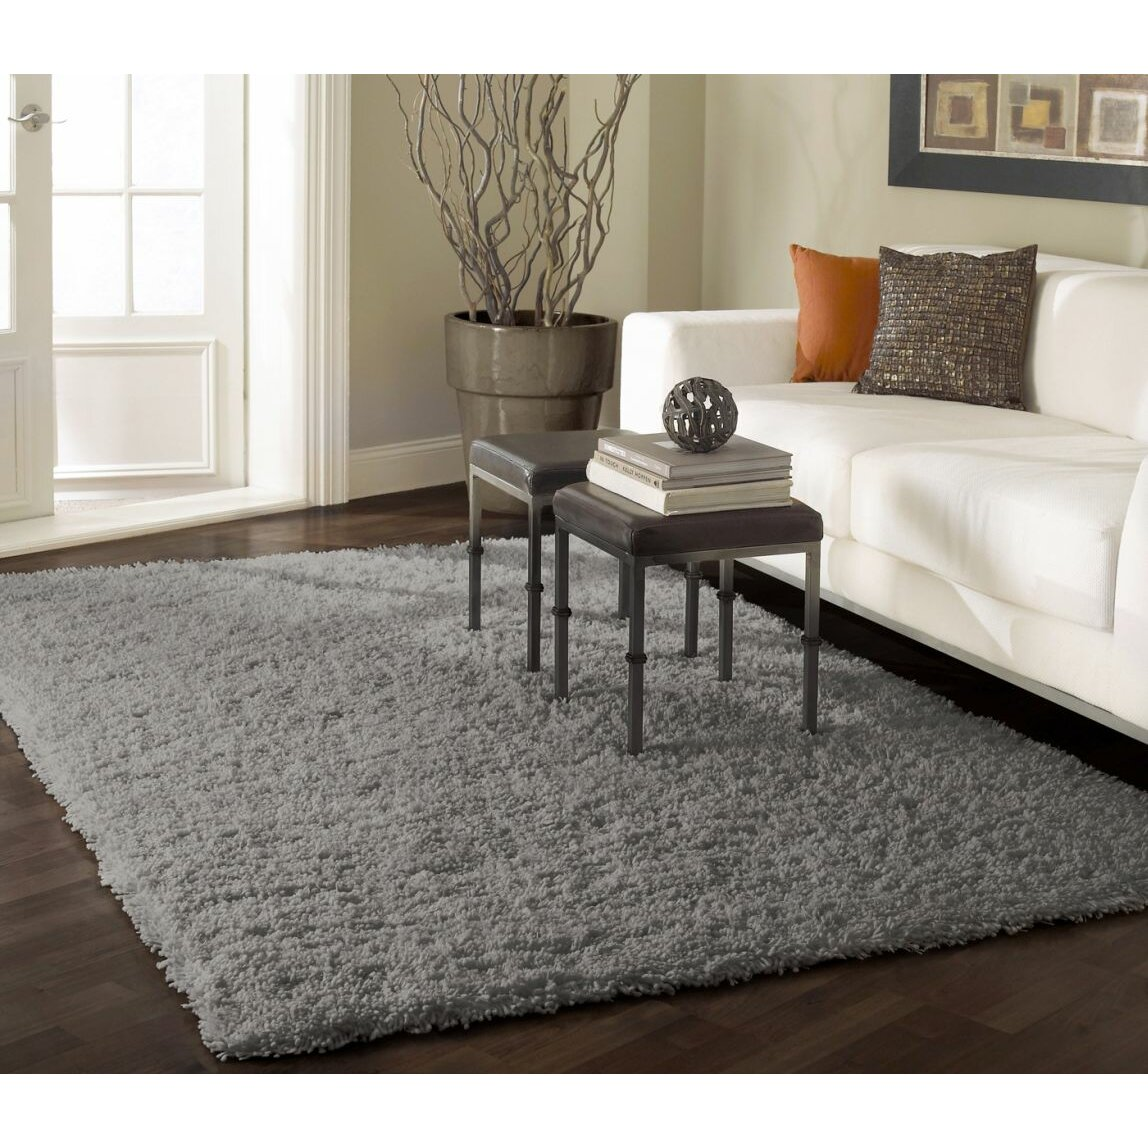 nuloom shag gray area rug reviews wayfair. Black Bedroom Furniture Sets. Home Design Ideas